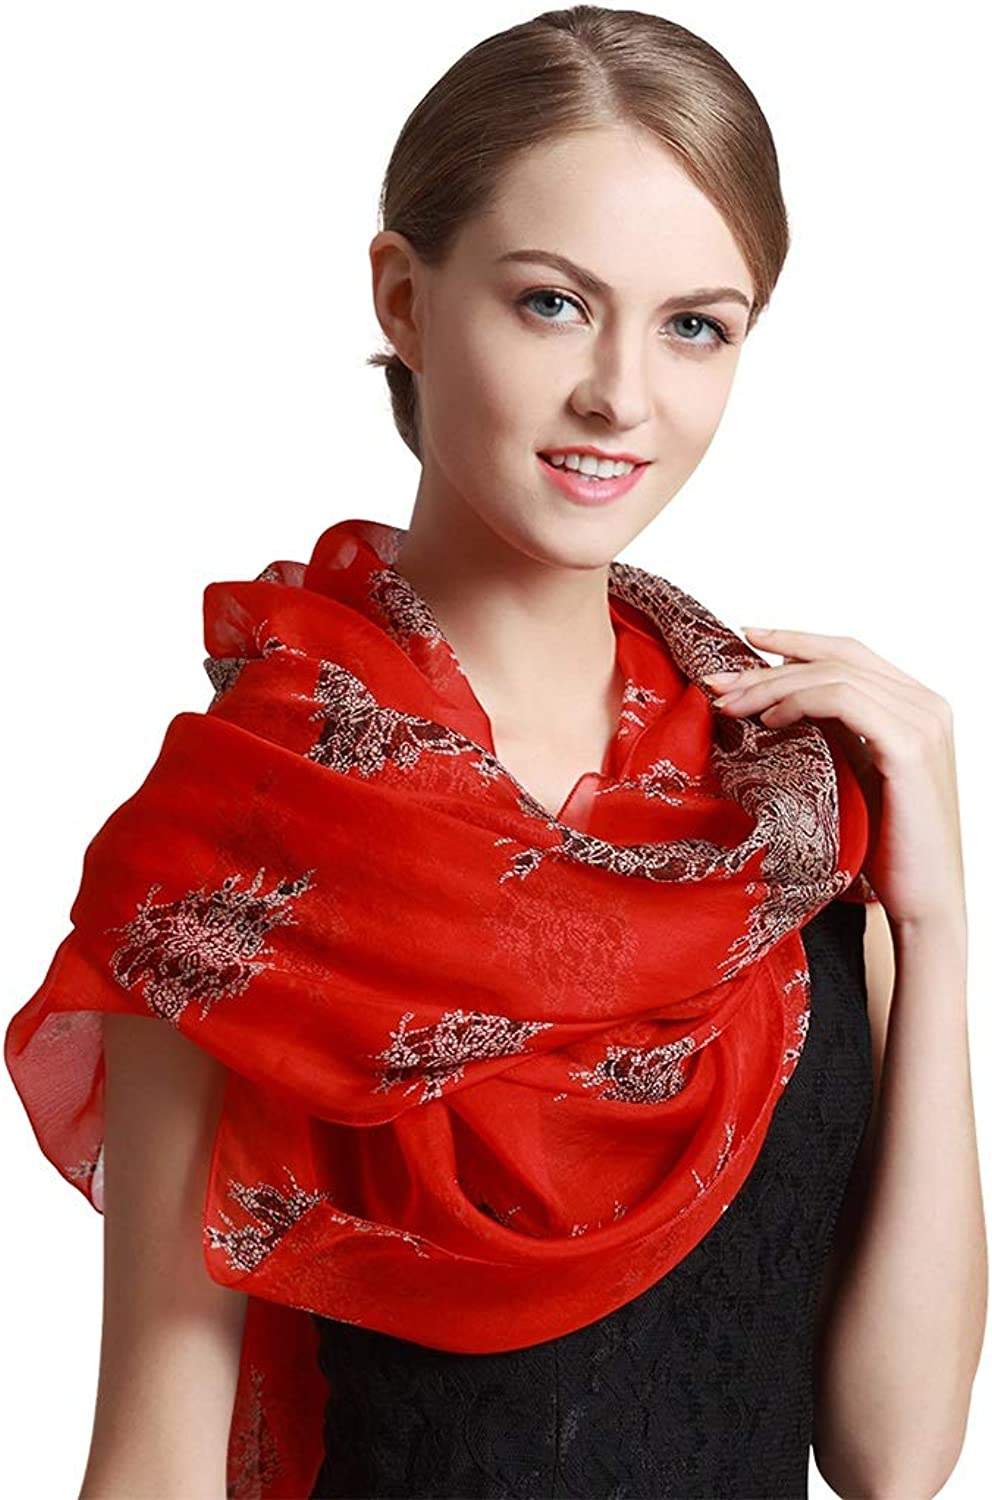 Wraps Scarf Silk Shawl Embroidery Beading Scarfs Females Gift Thin Scarf Sapphire bluee Cape Gift Box Packaging (78  53 Inches) Scarves (color   Red)